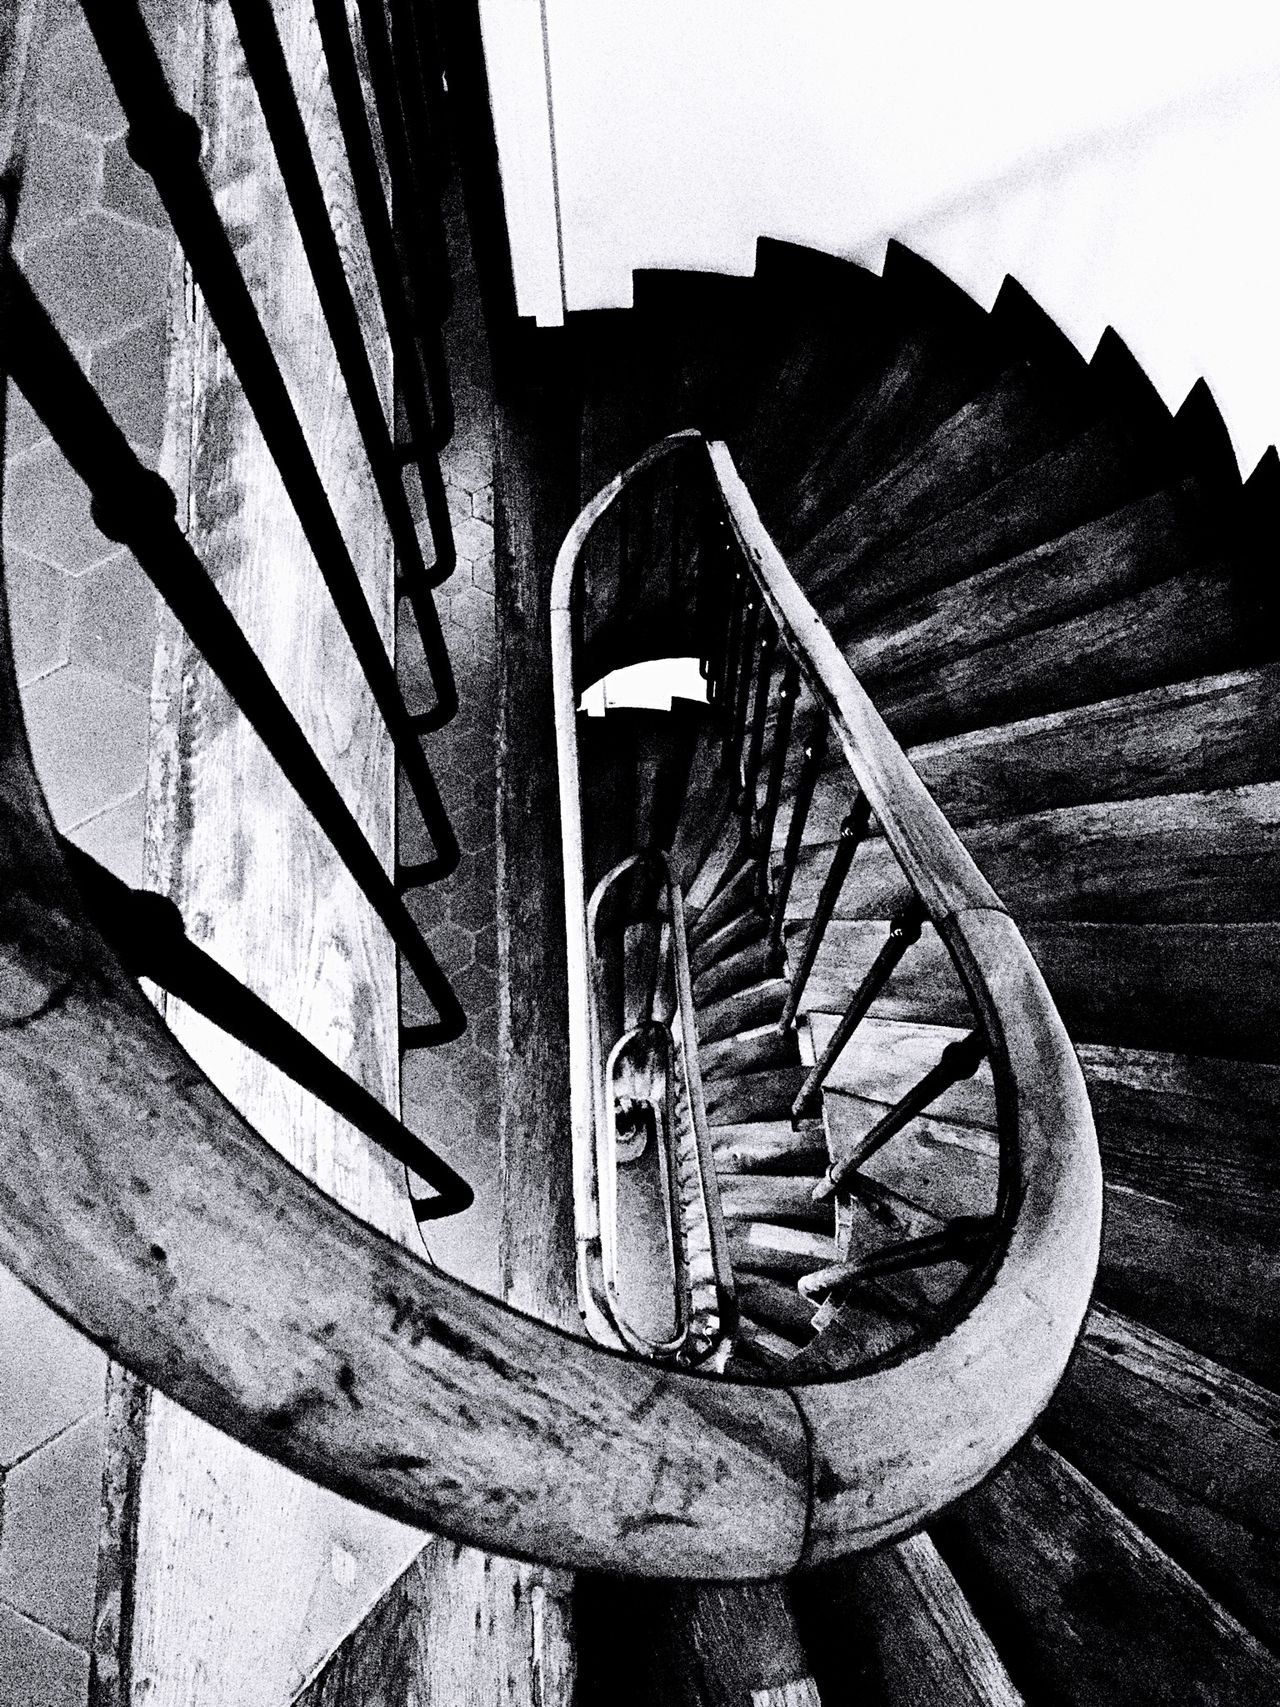 Black & White Stairs Monochrome Architectural Detail